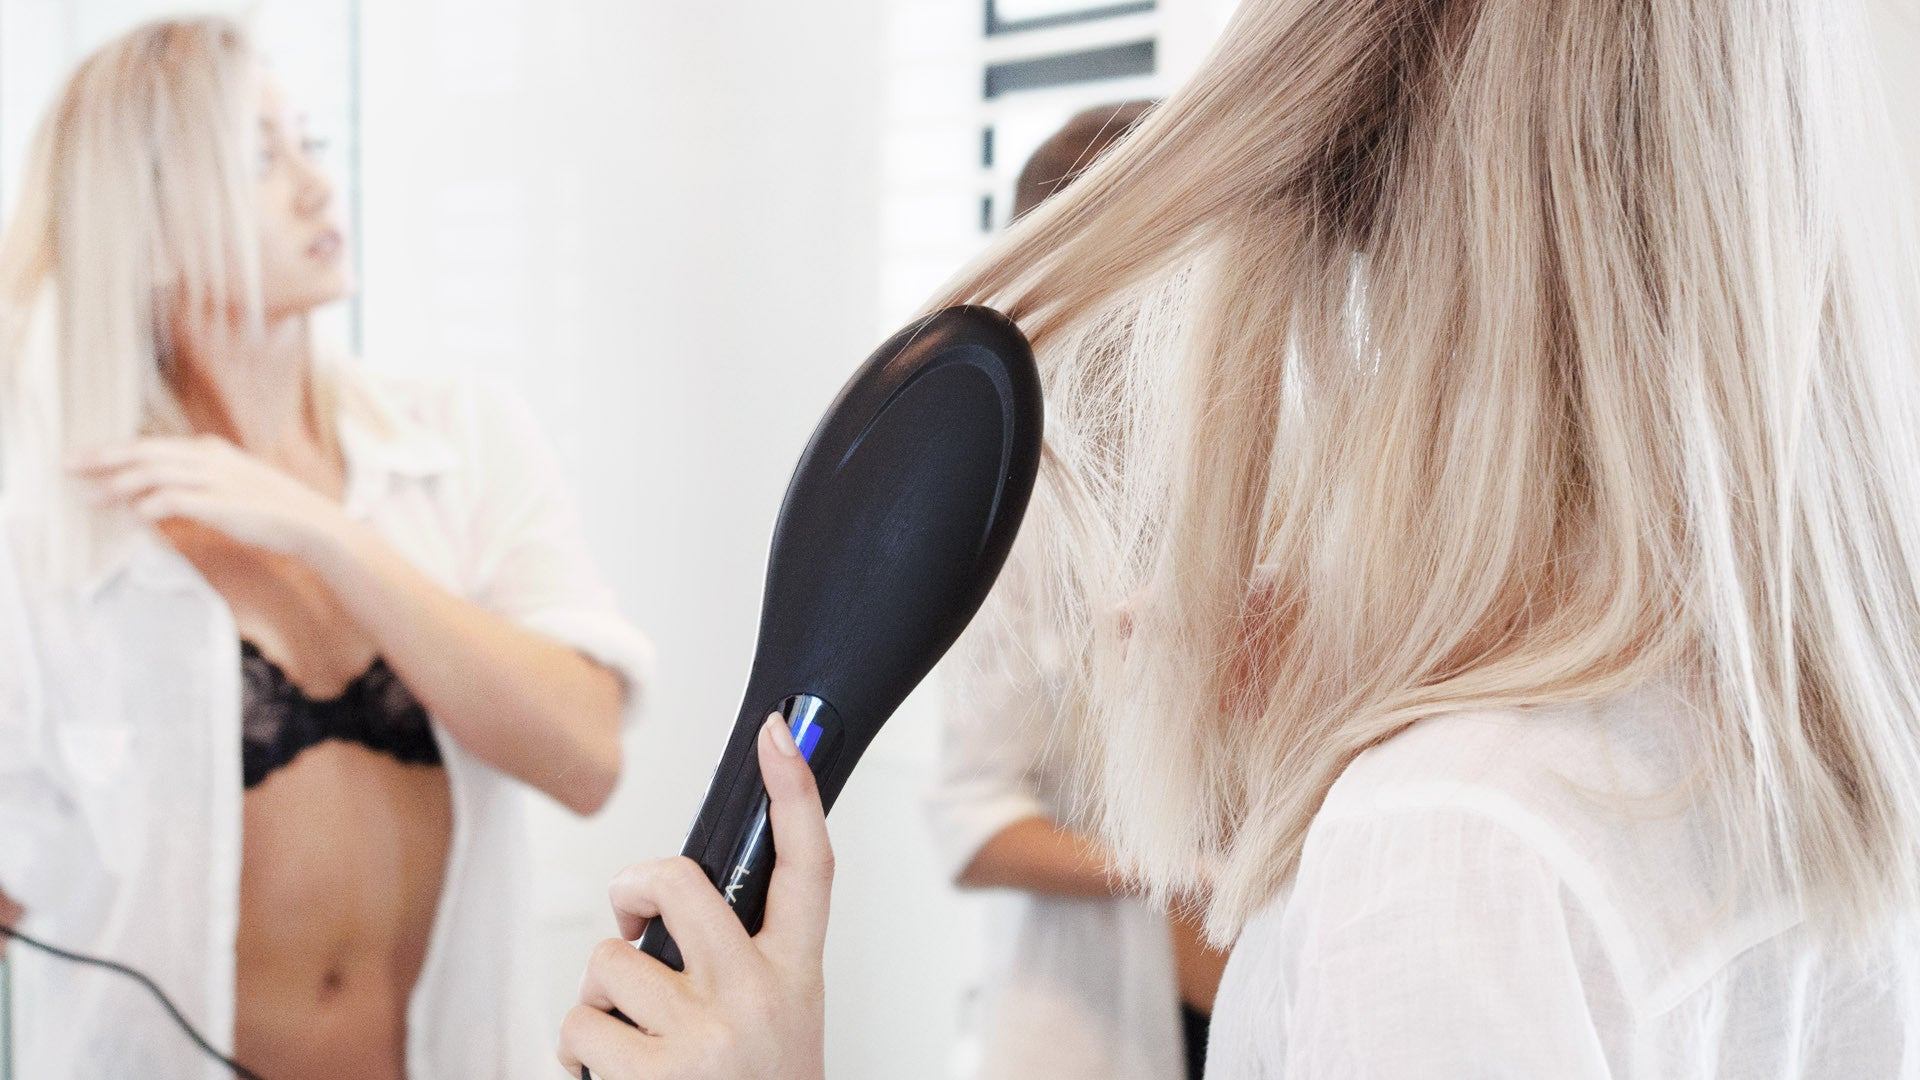 LVL Hair Brush - Easy, Fast & Safe